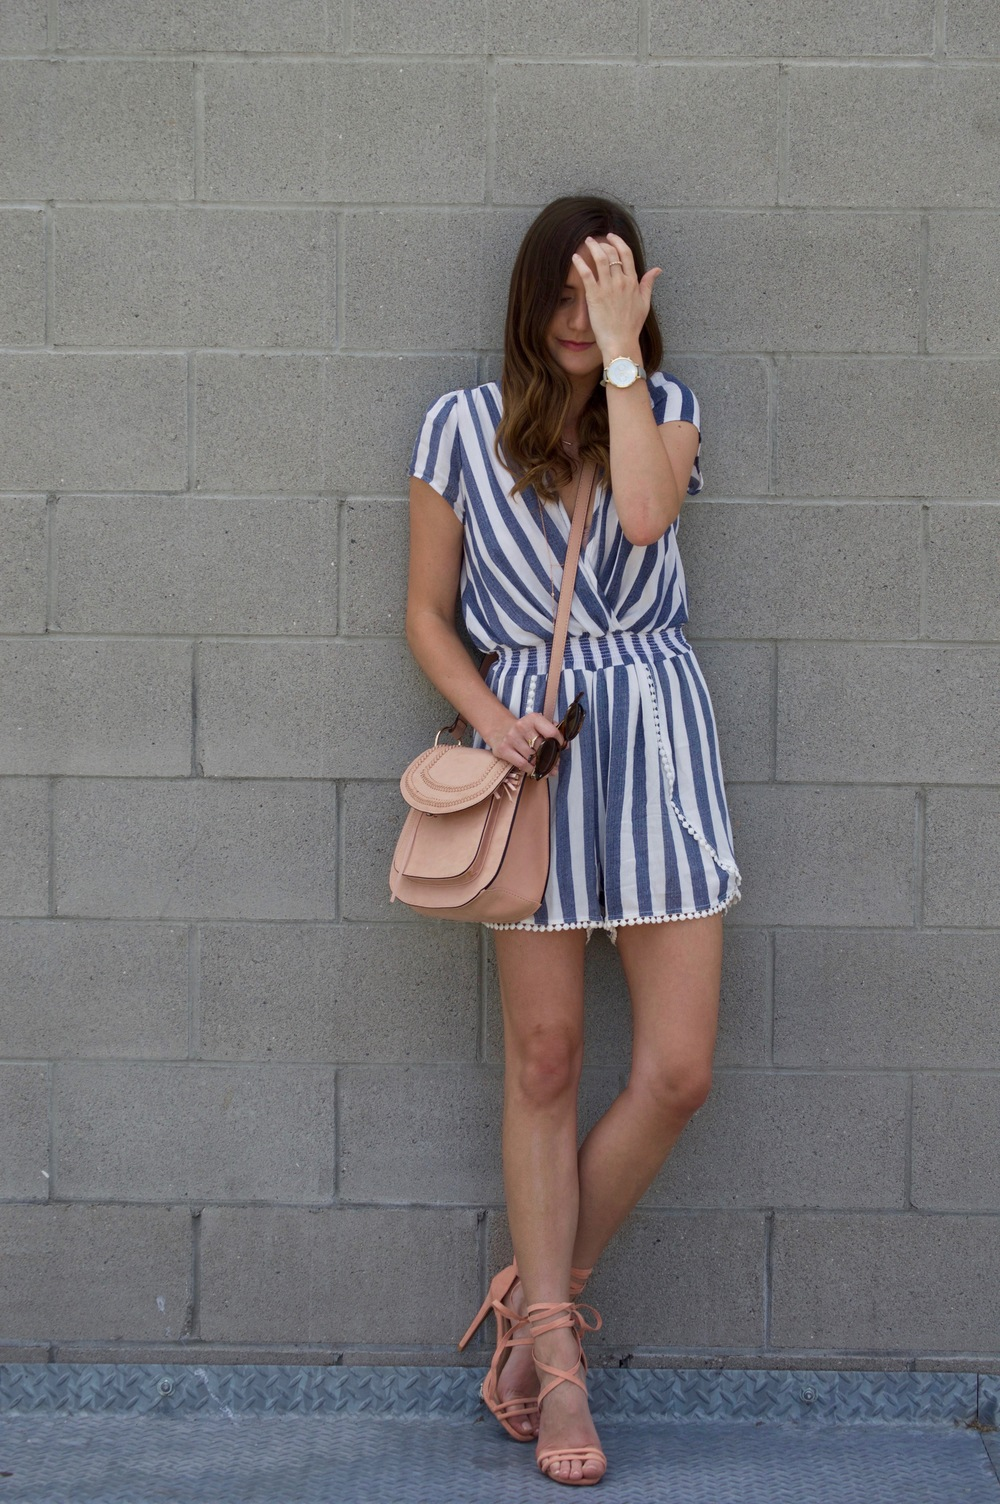 Shop the Look Below. Romper: c/o J.Coda Clothing. Shoes: c/o Make Me Chic. Bag: Franco Sarto via TJMaxx—similar below. Watch: ILY Couture. Necklace: Nordstrom. Rings: c/o BaubleBar. Sunglasses: Ray-Ban.